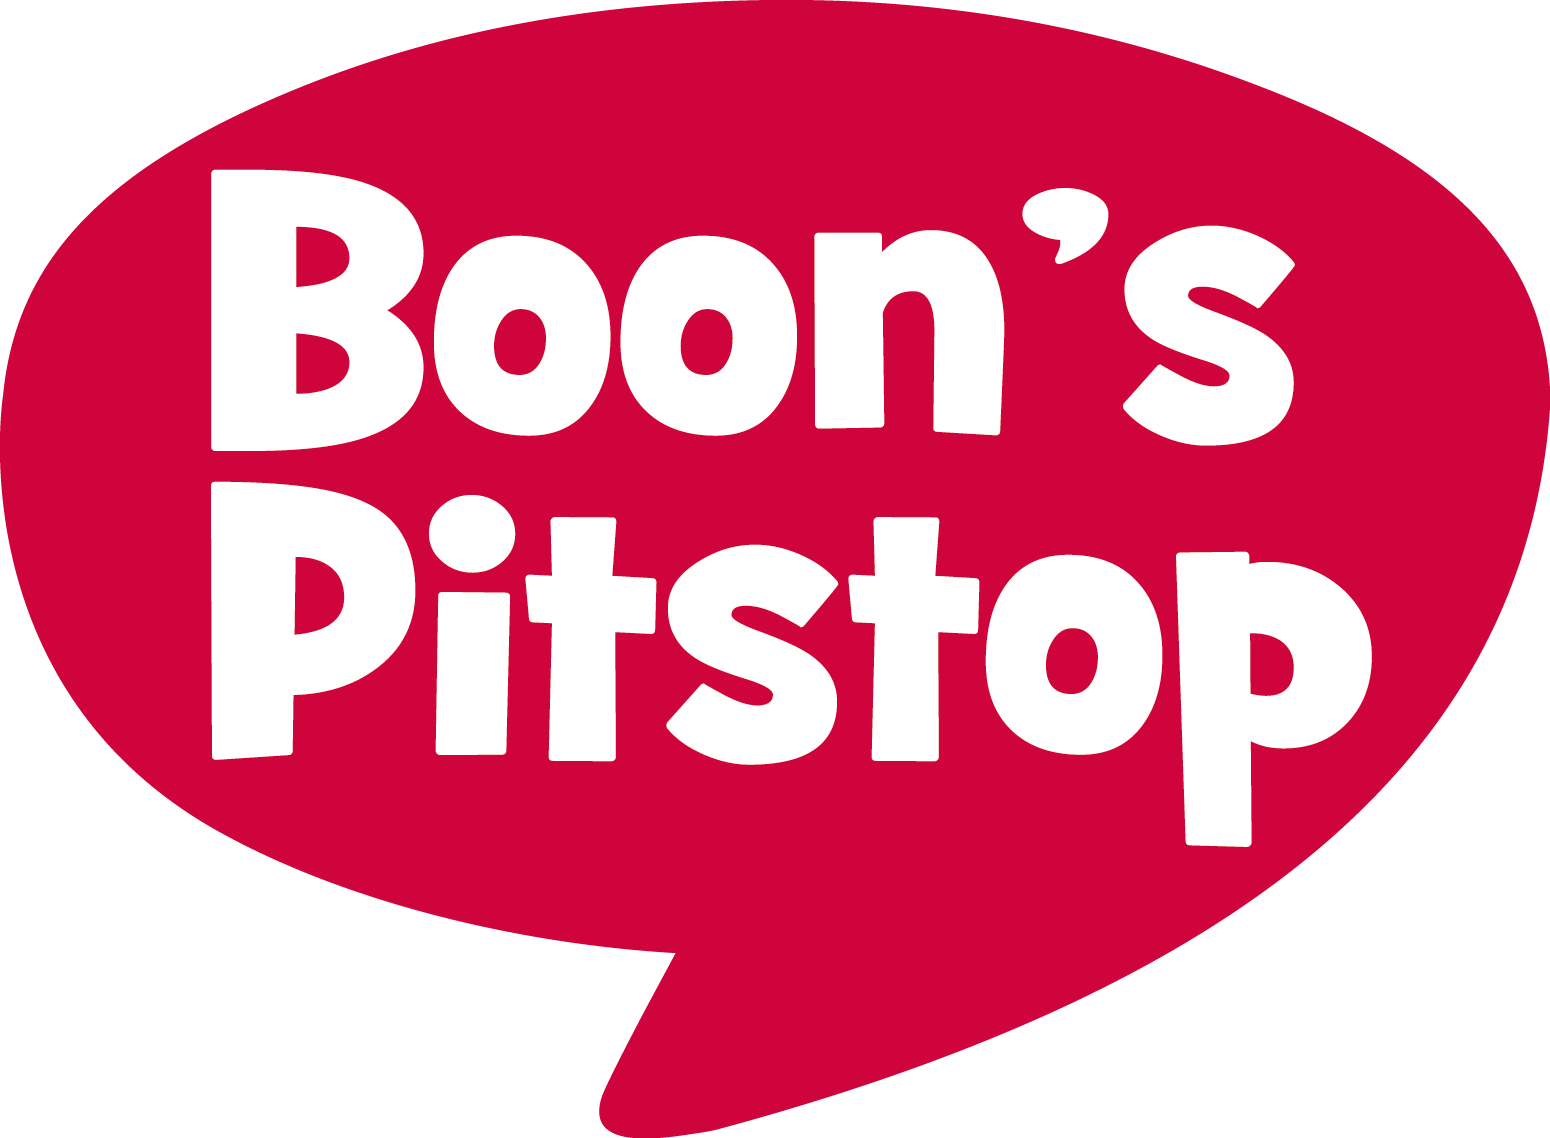 Boon's Pitstop